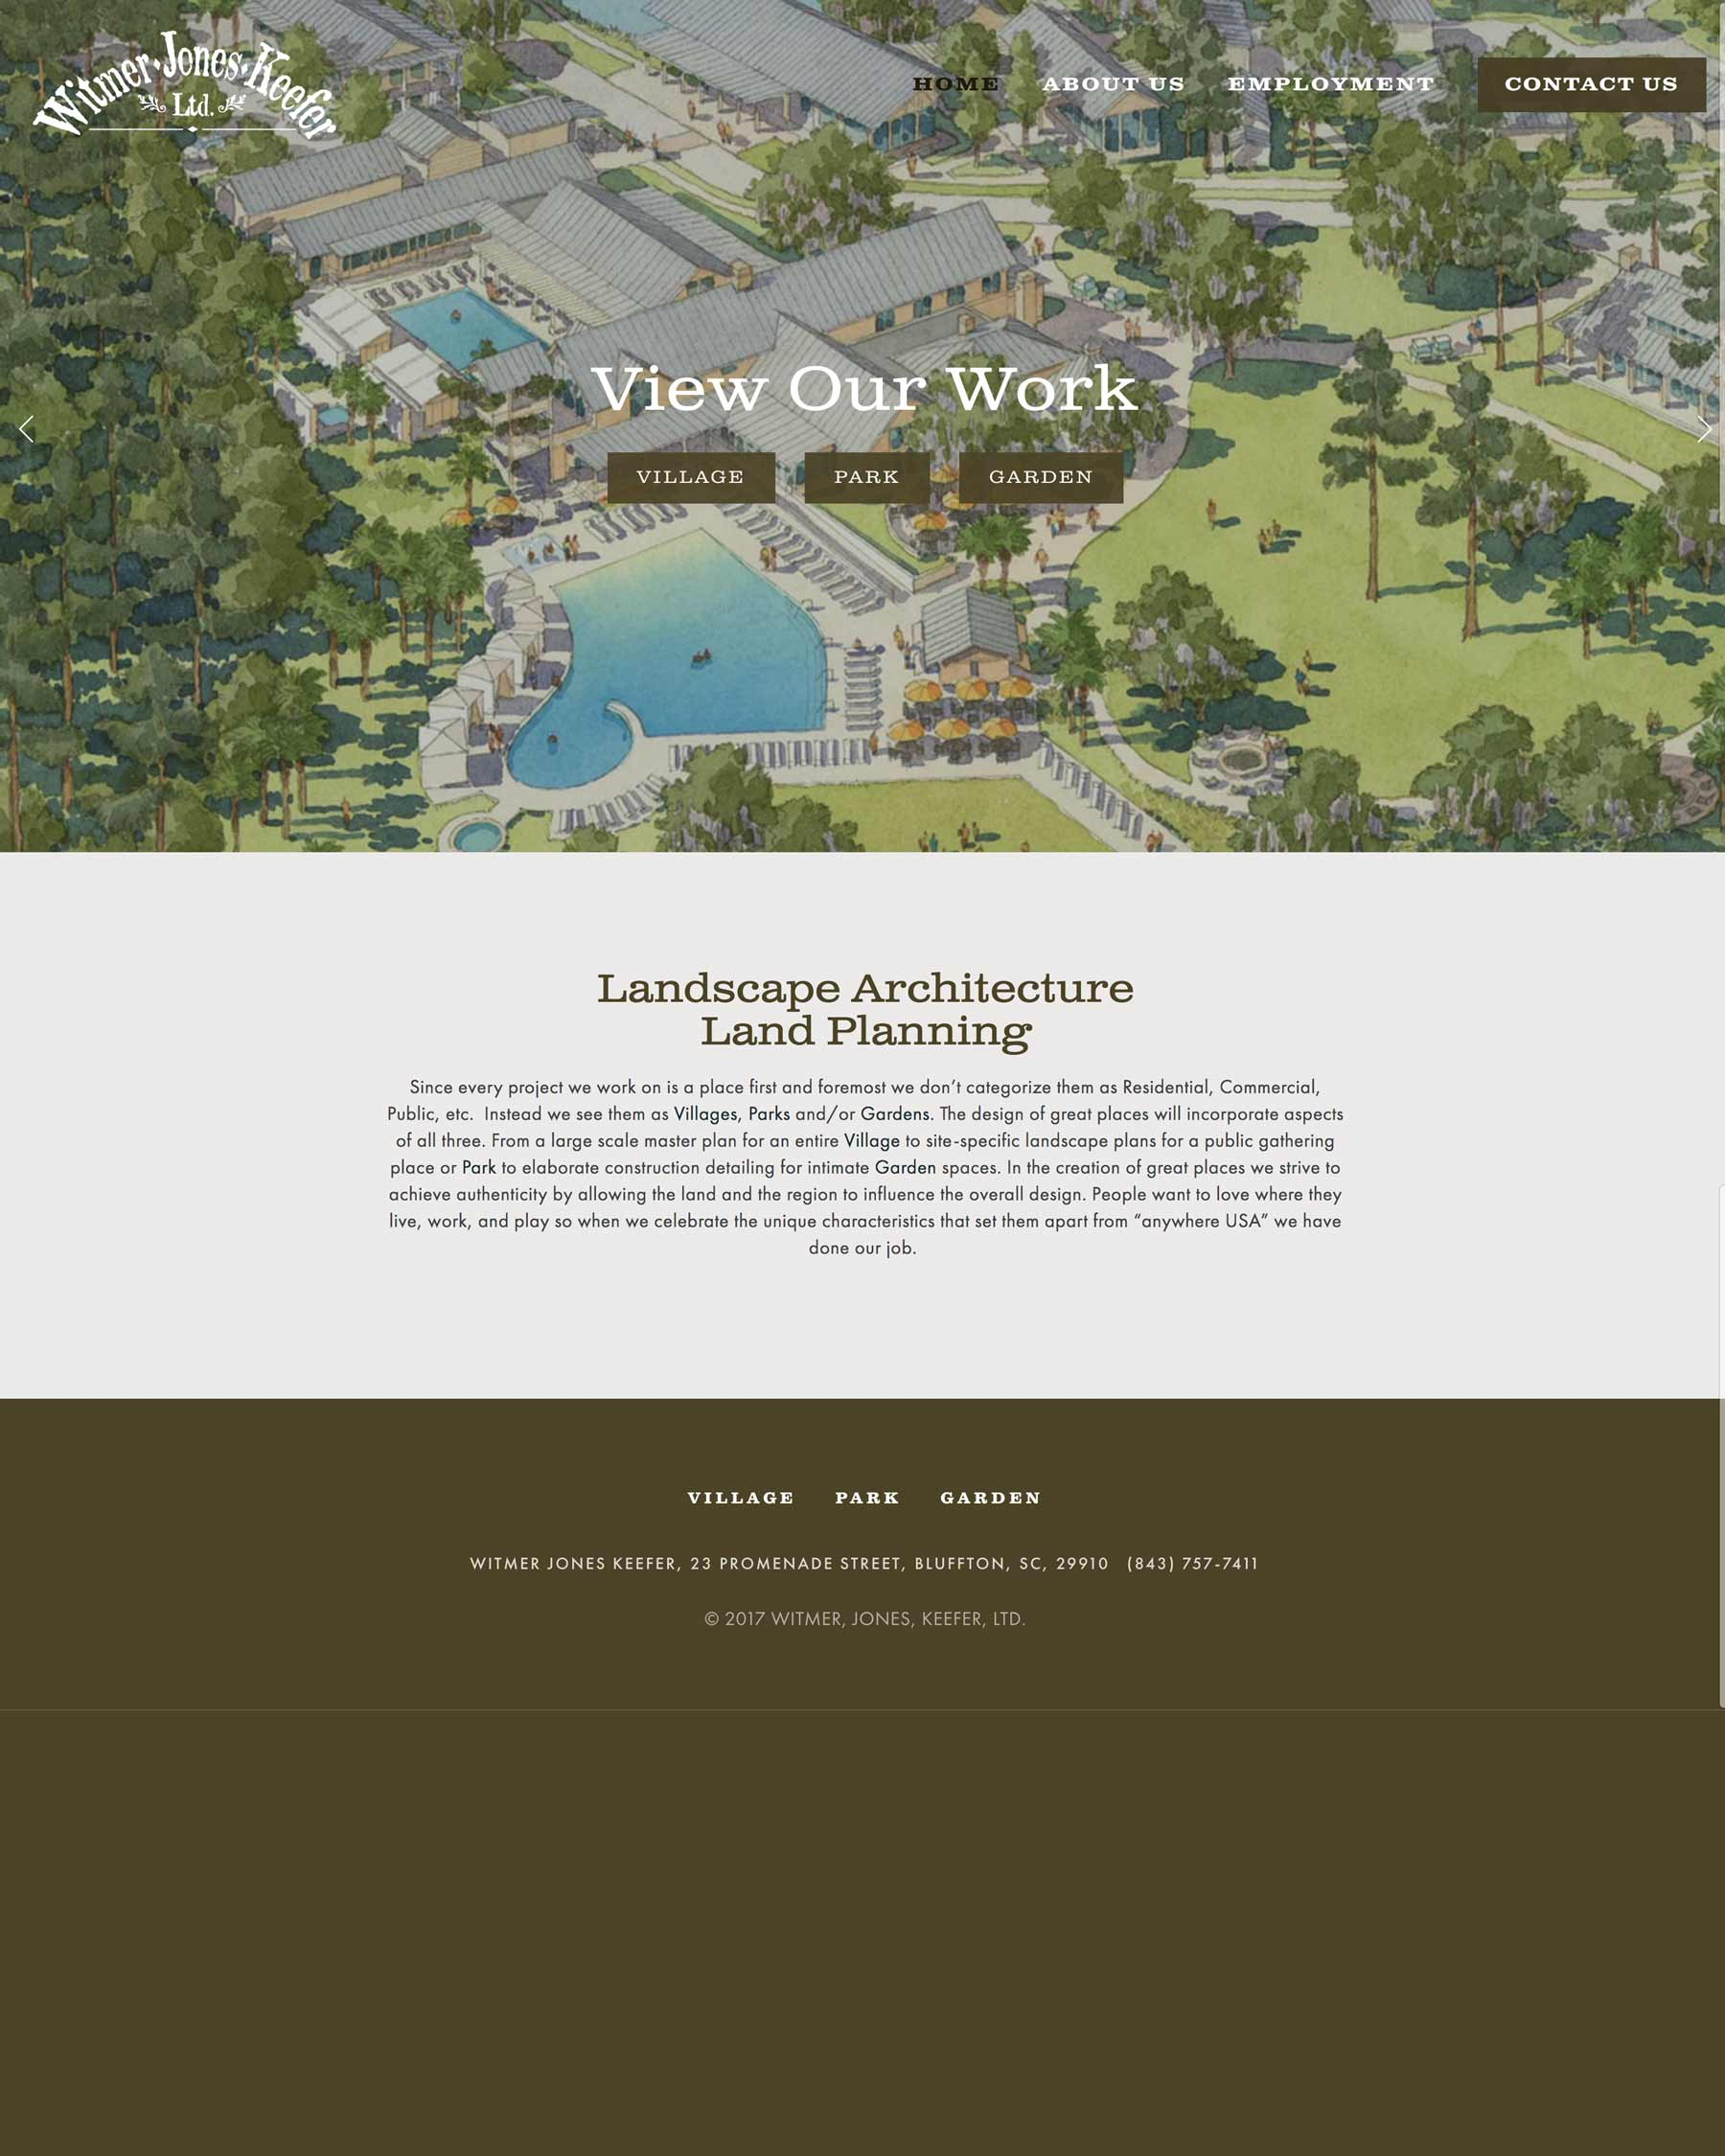 Witmer・Jones・ Keefer - A Commercial and Residential Landscape Architecture and Land Planning Firm